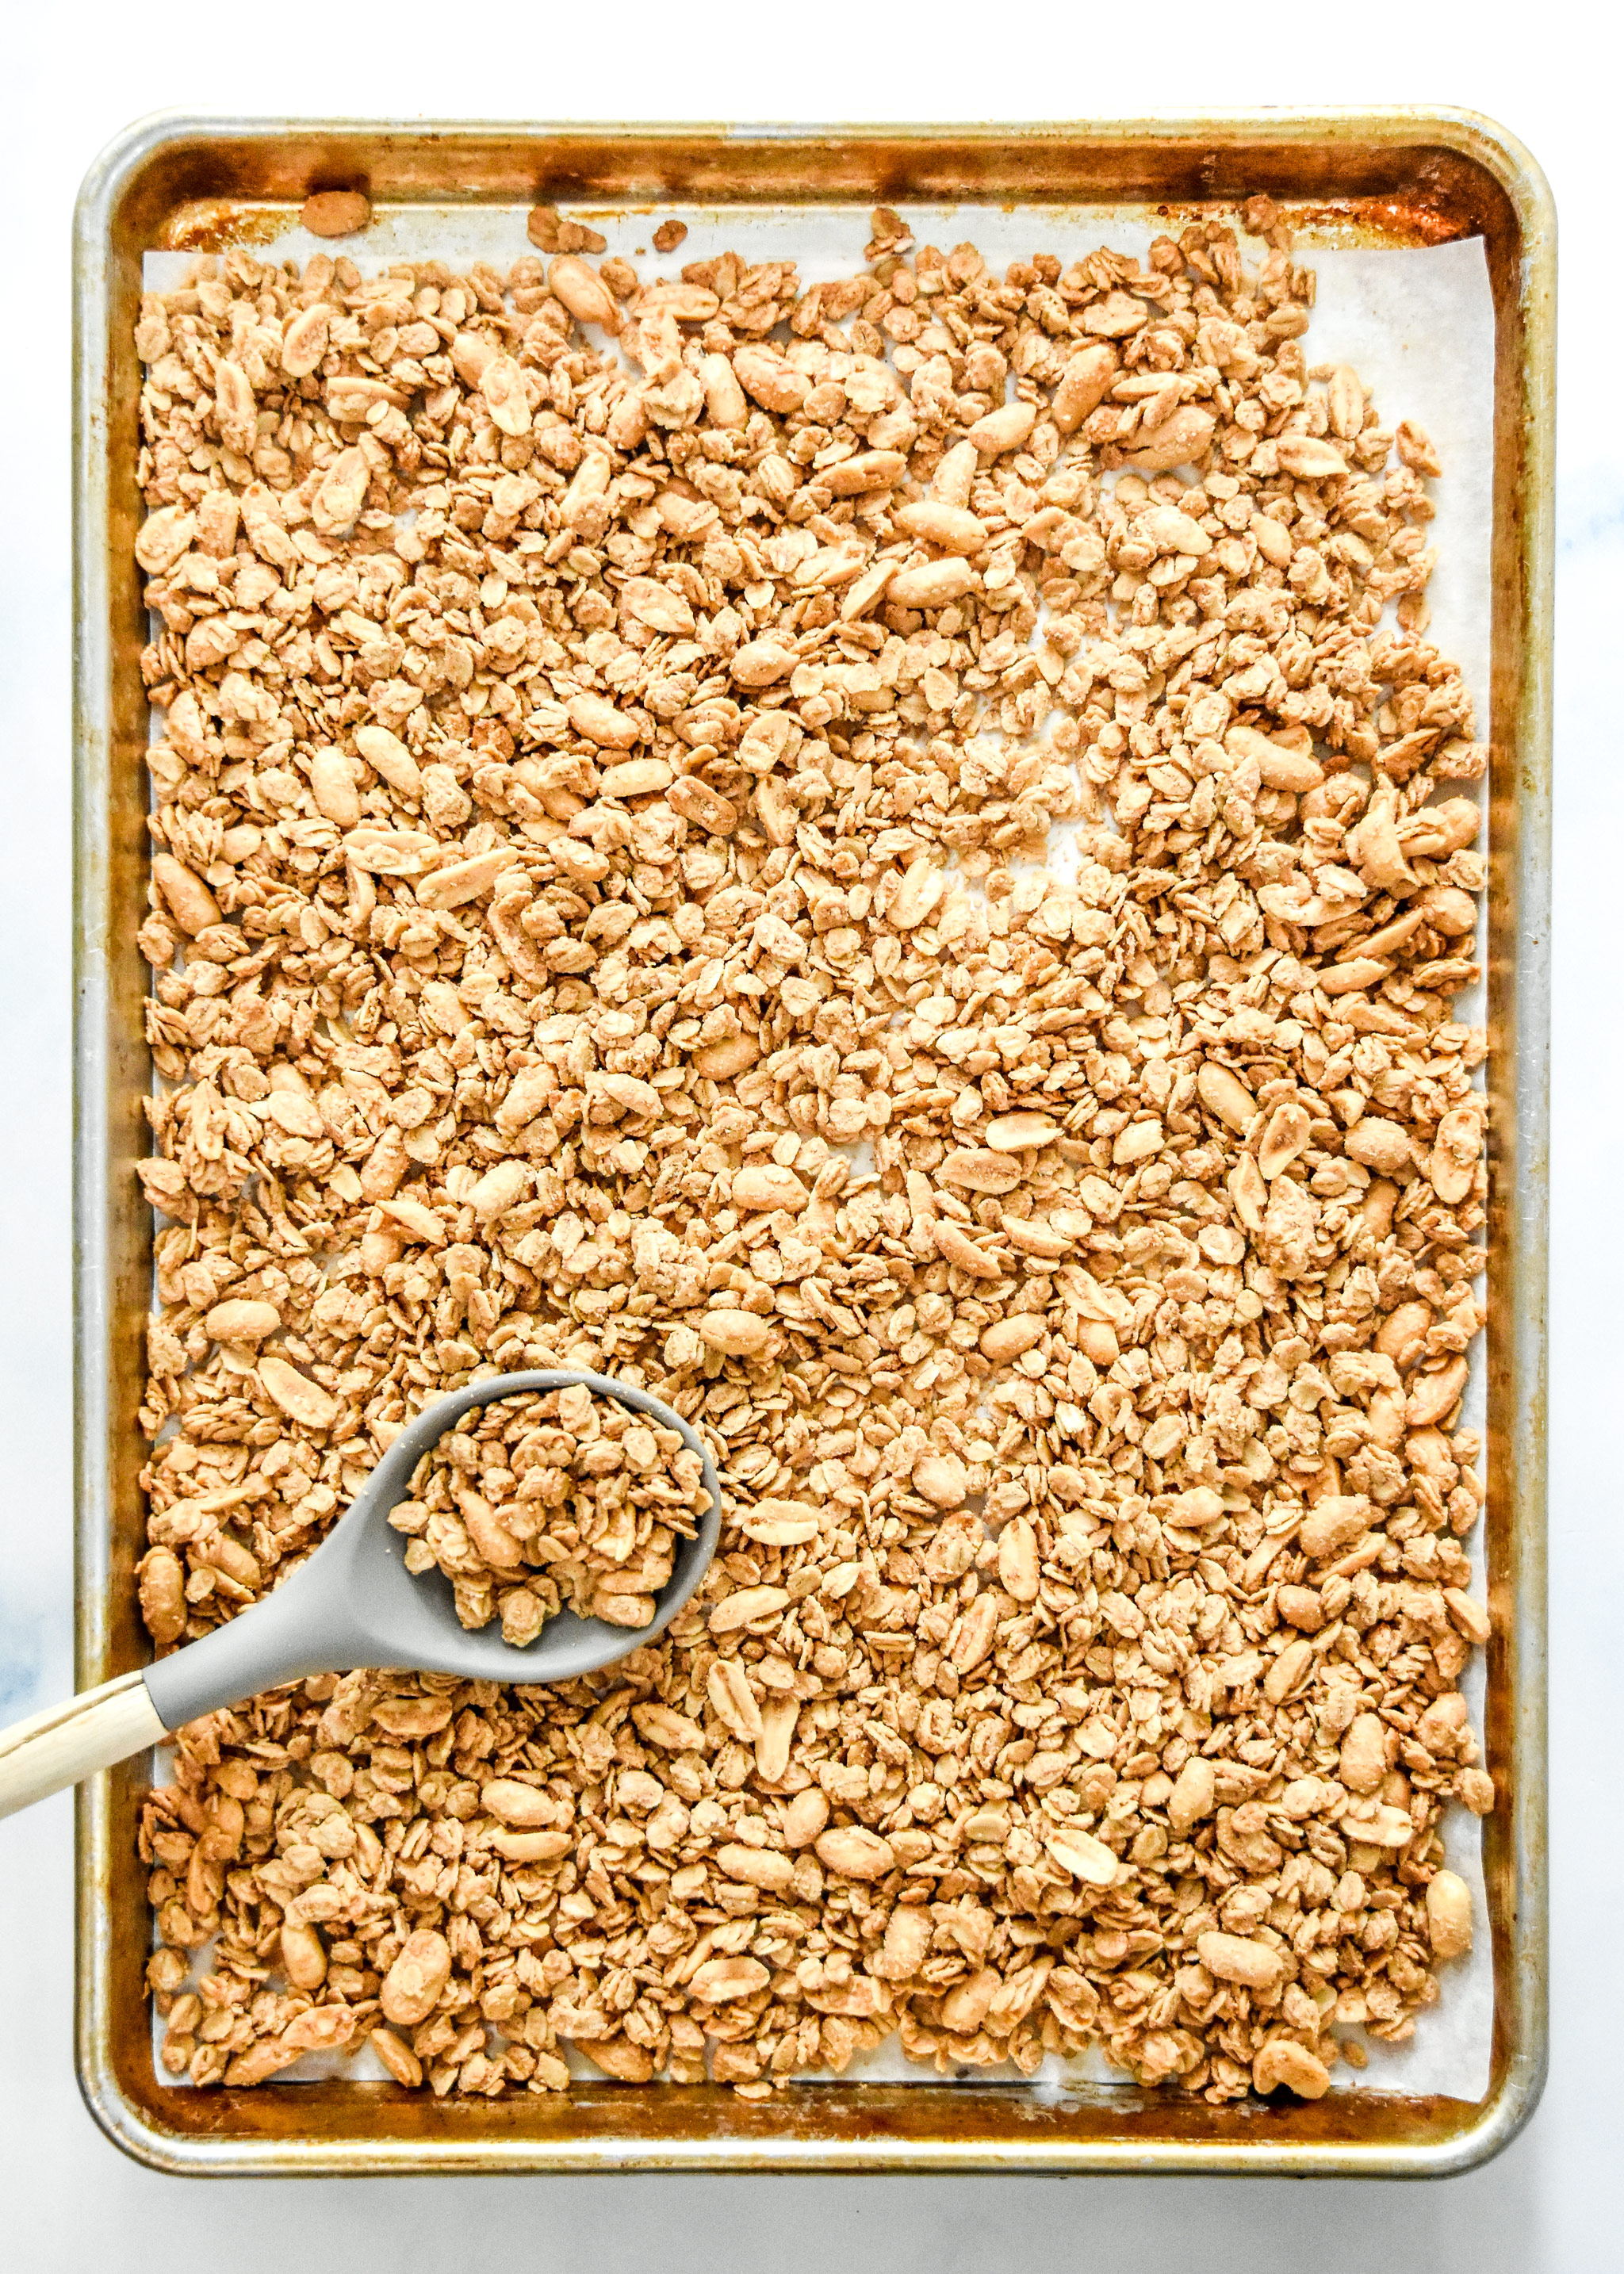 cooked peanut butter granola on a sheet pan with a spoon.